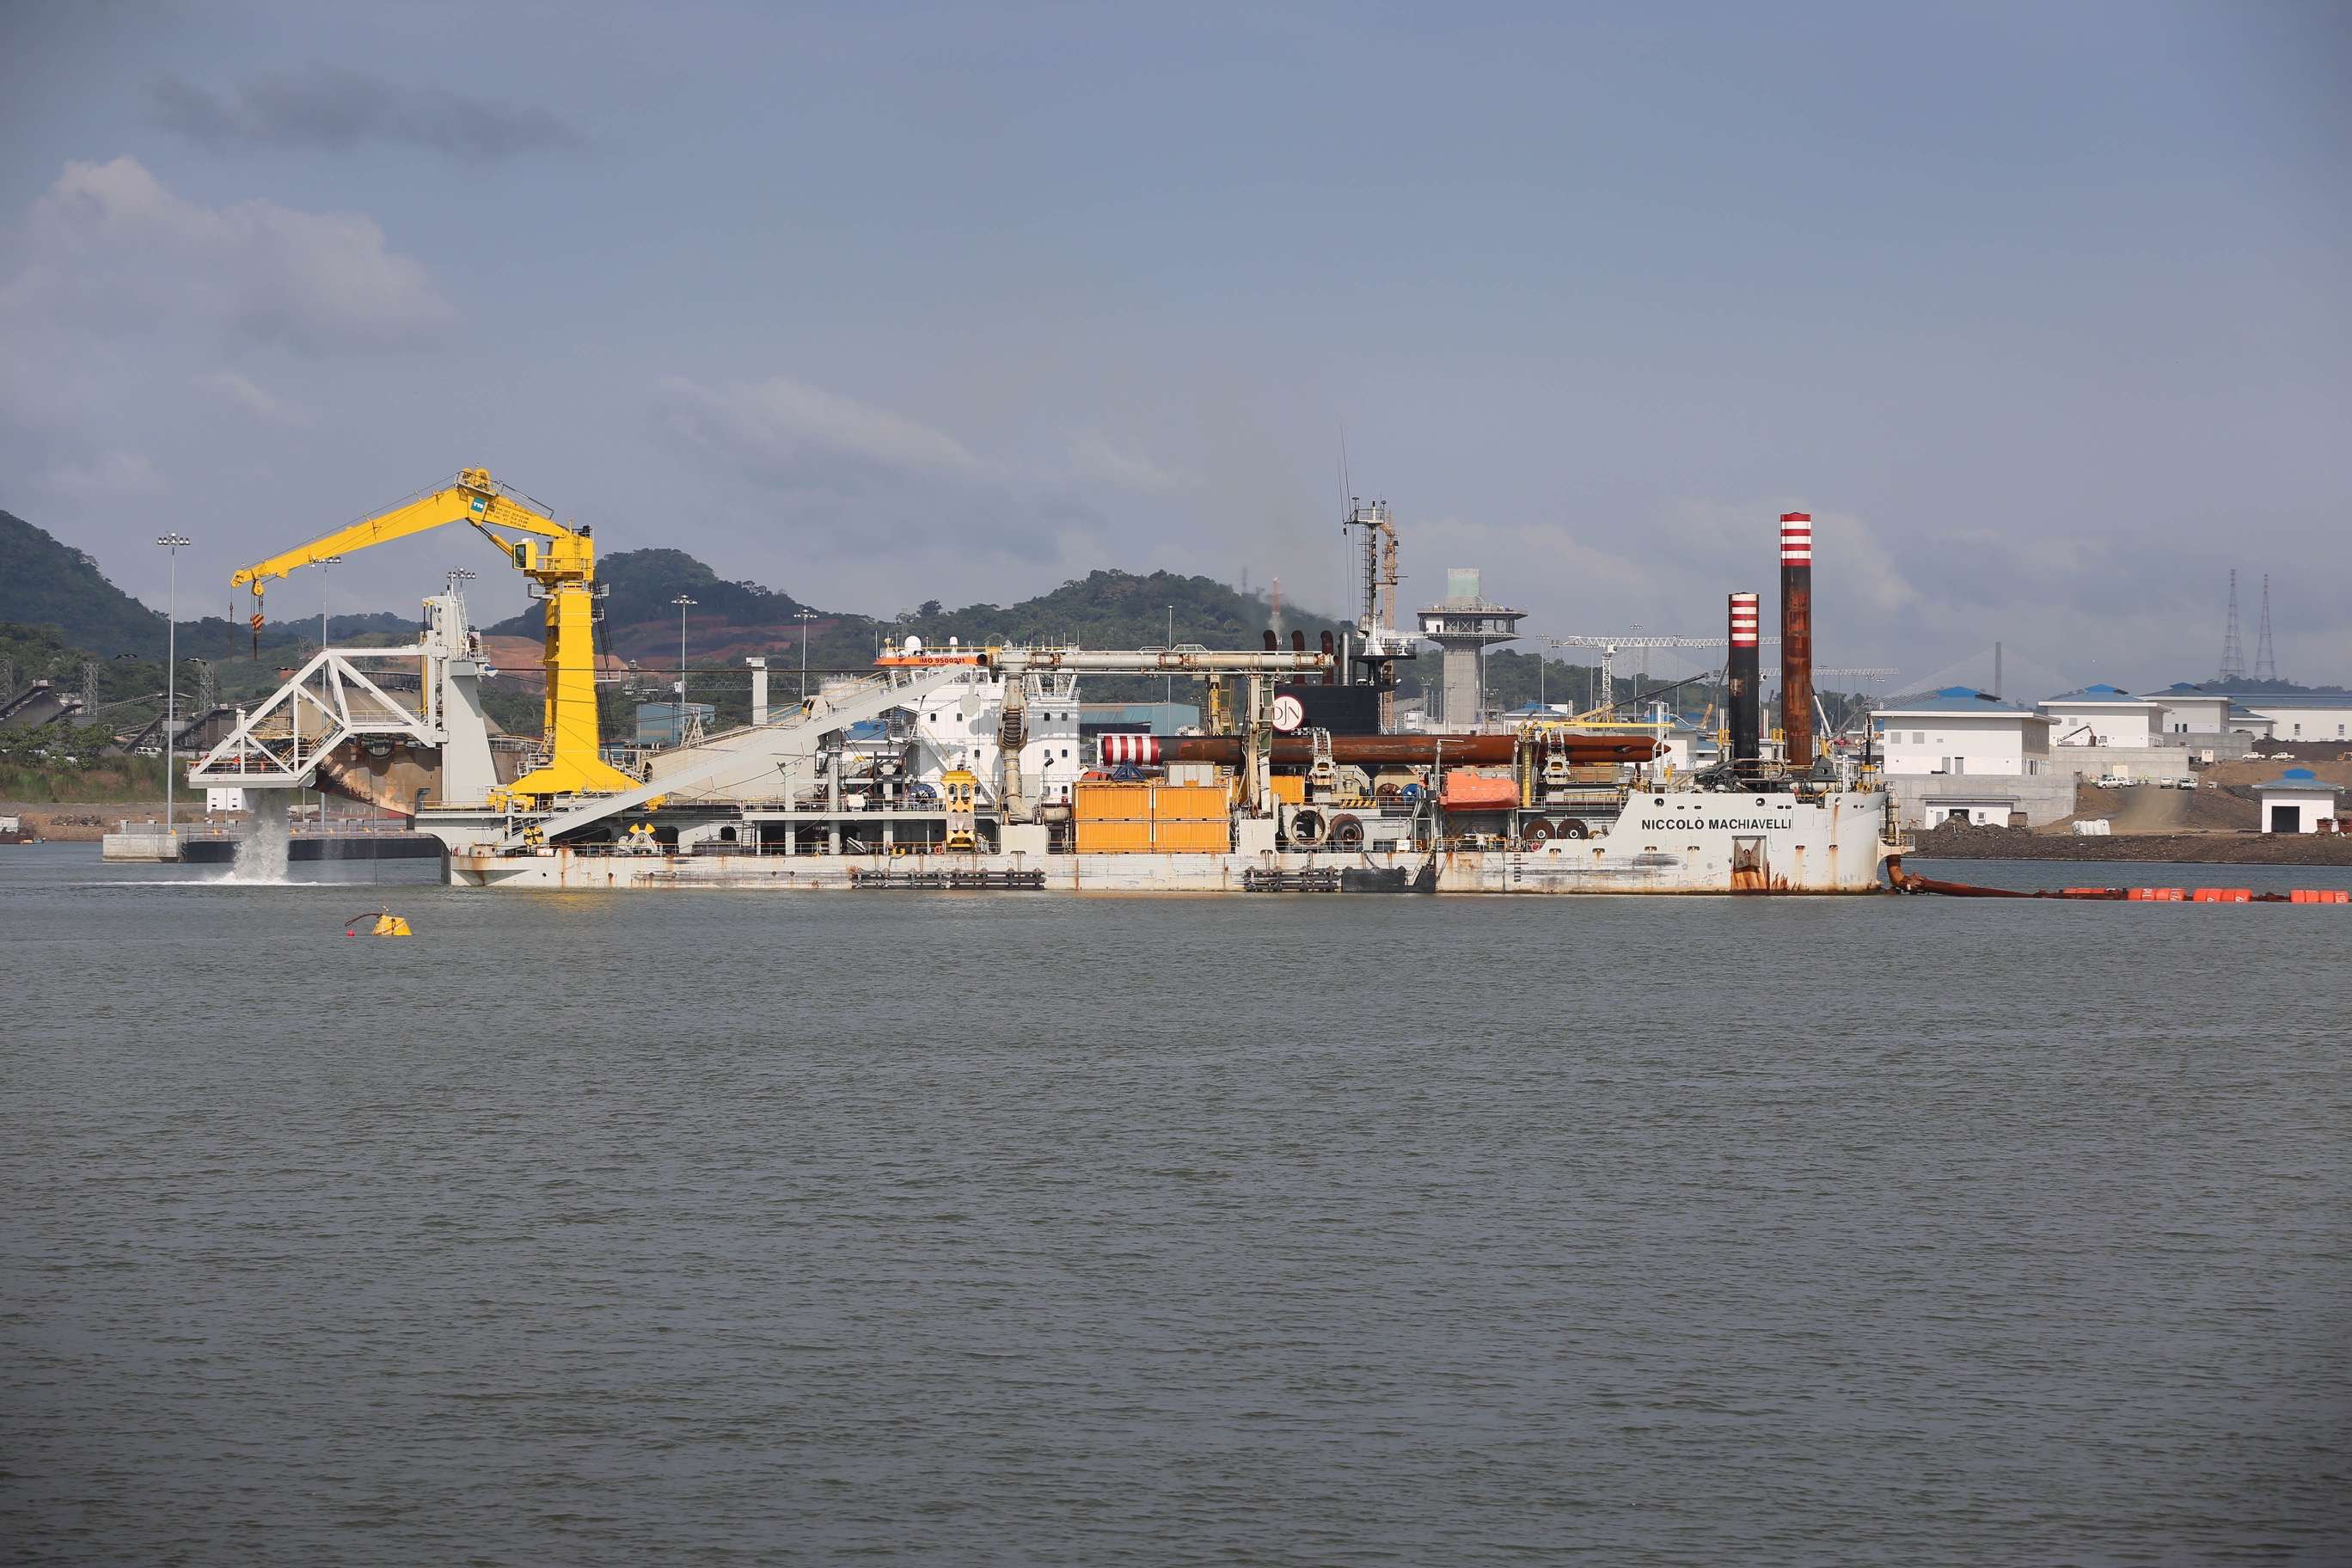 This odd-looking vessel is part of a dredging operation to make sure the bottom is deep enough to handle the giant ships that regularly travel the Panama Canal.